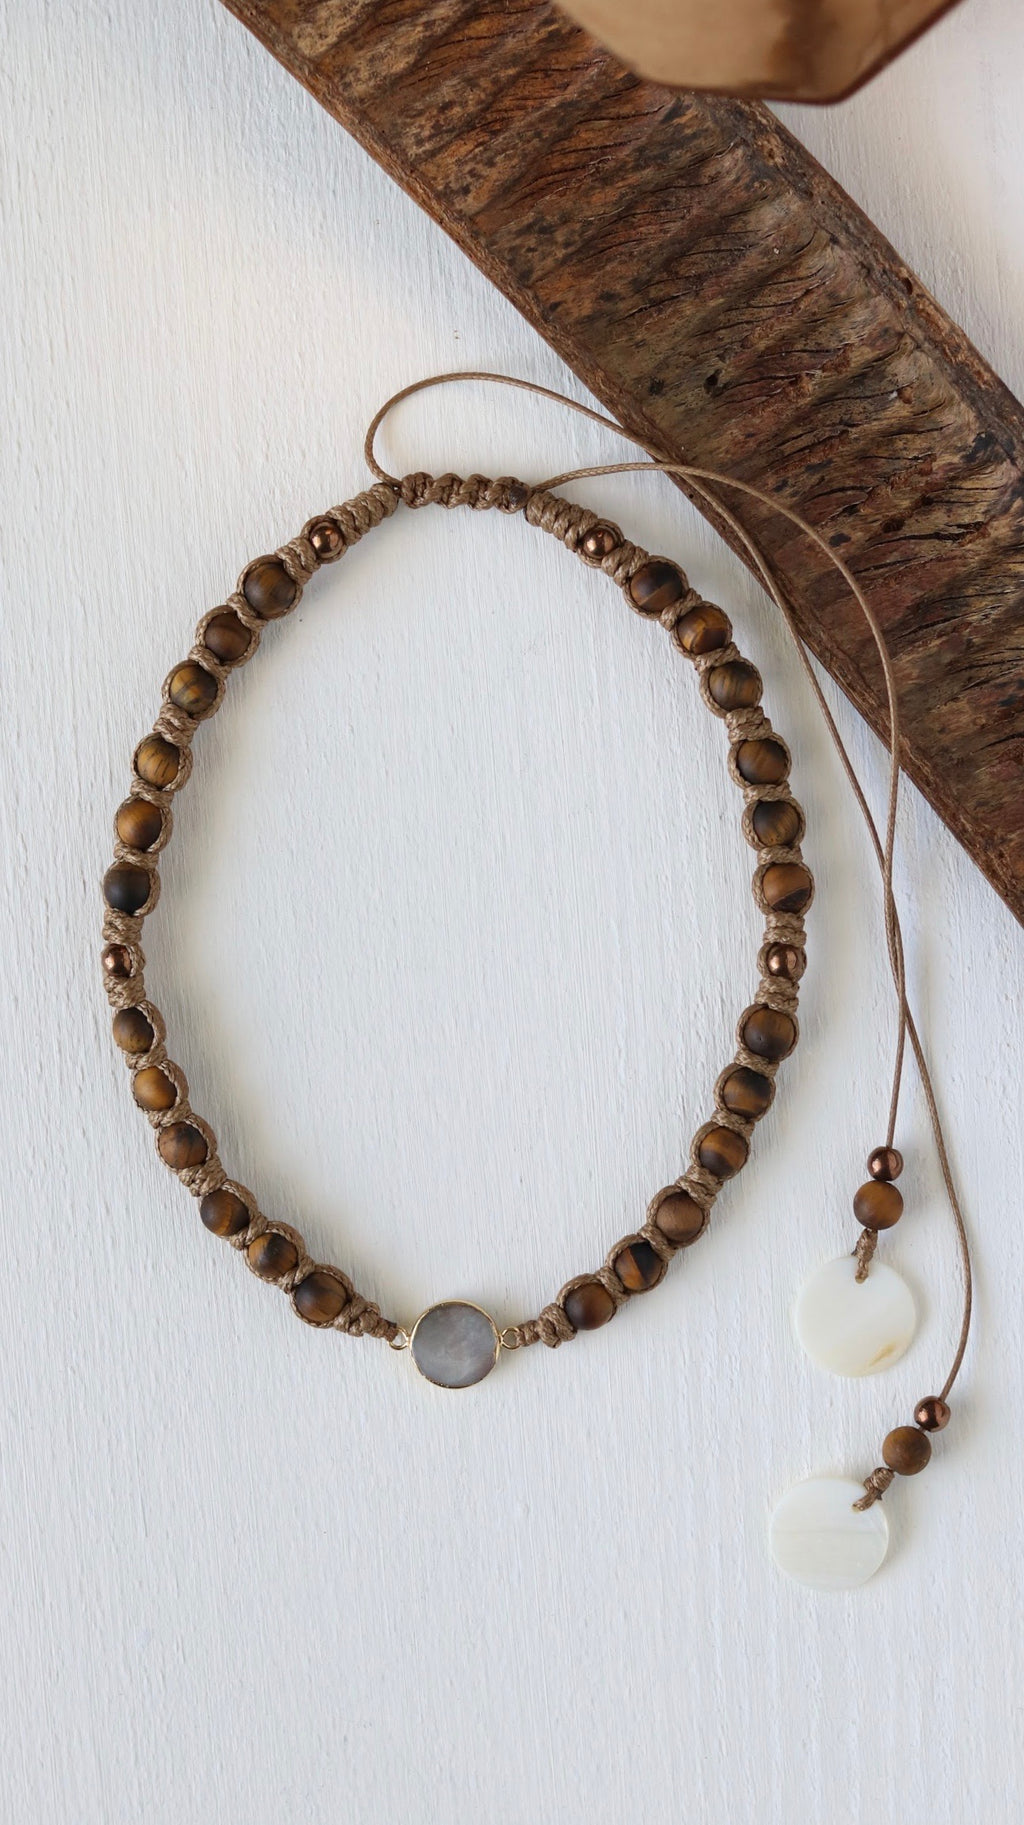 24k gold plated Fresh water pearl with Tiger's Eye macrame necklace - BurzanDesign